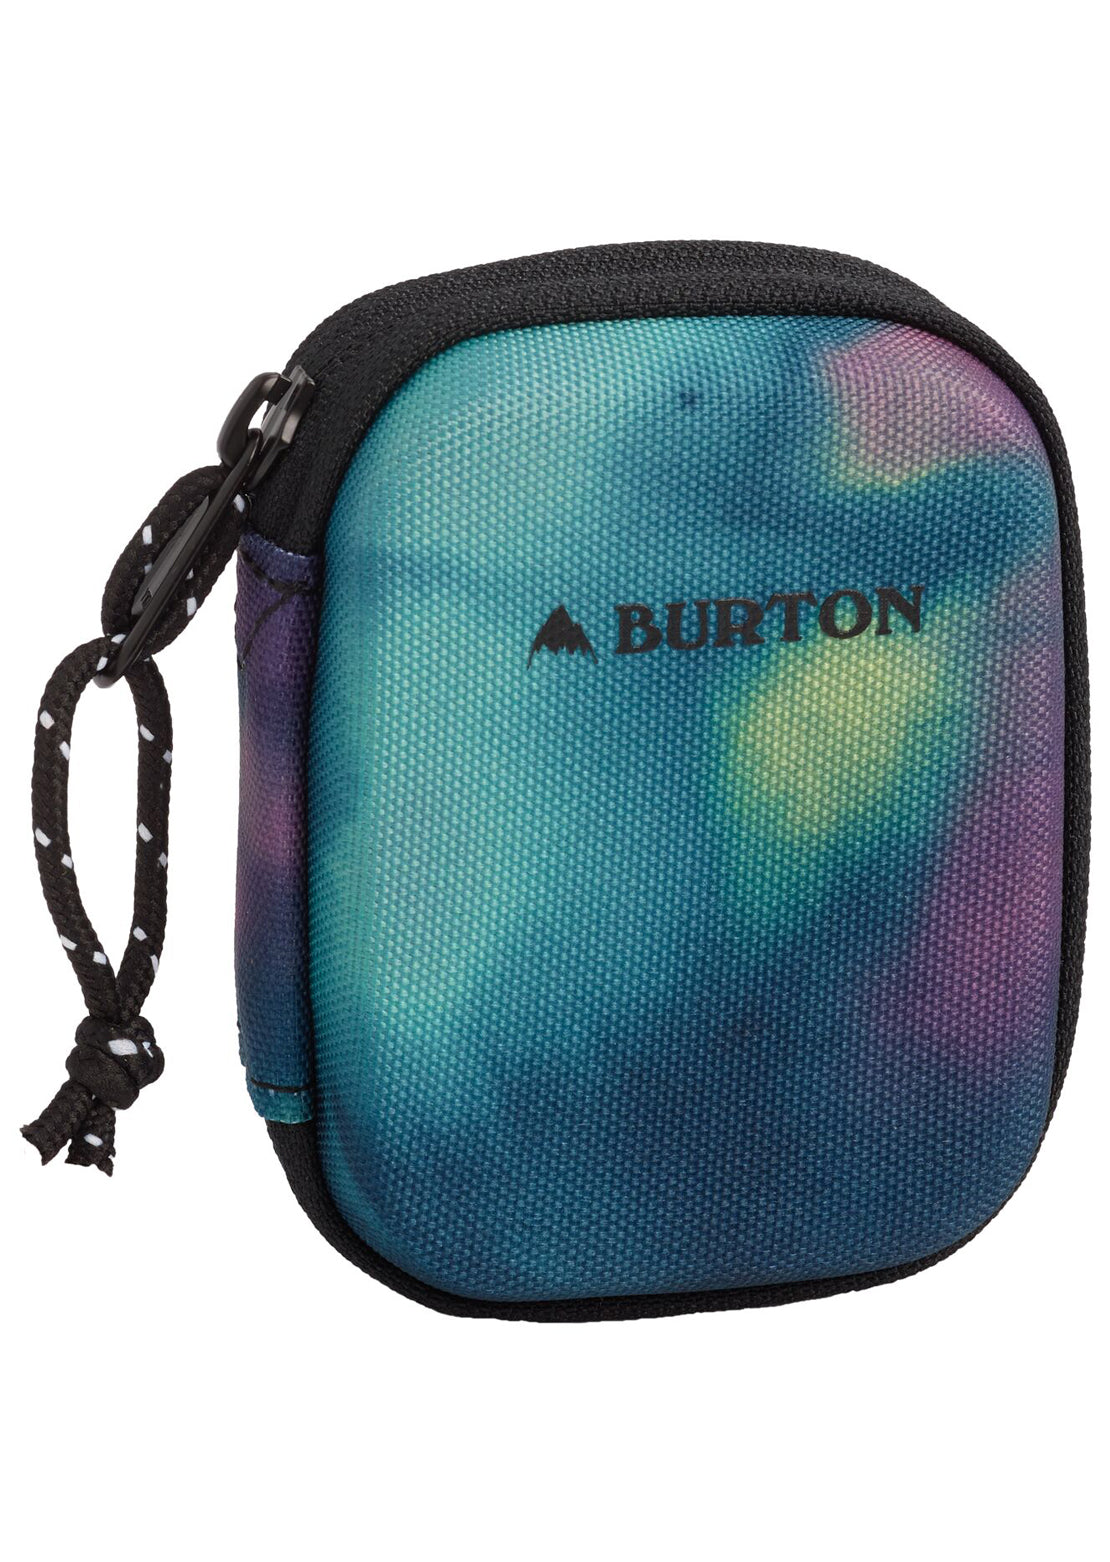 Burton The Kit Multi Purpose Storage Case Aura Dye